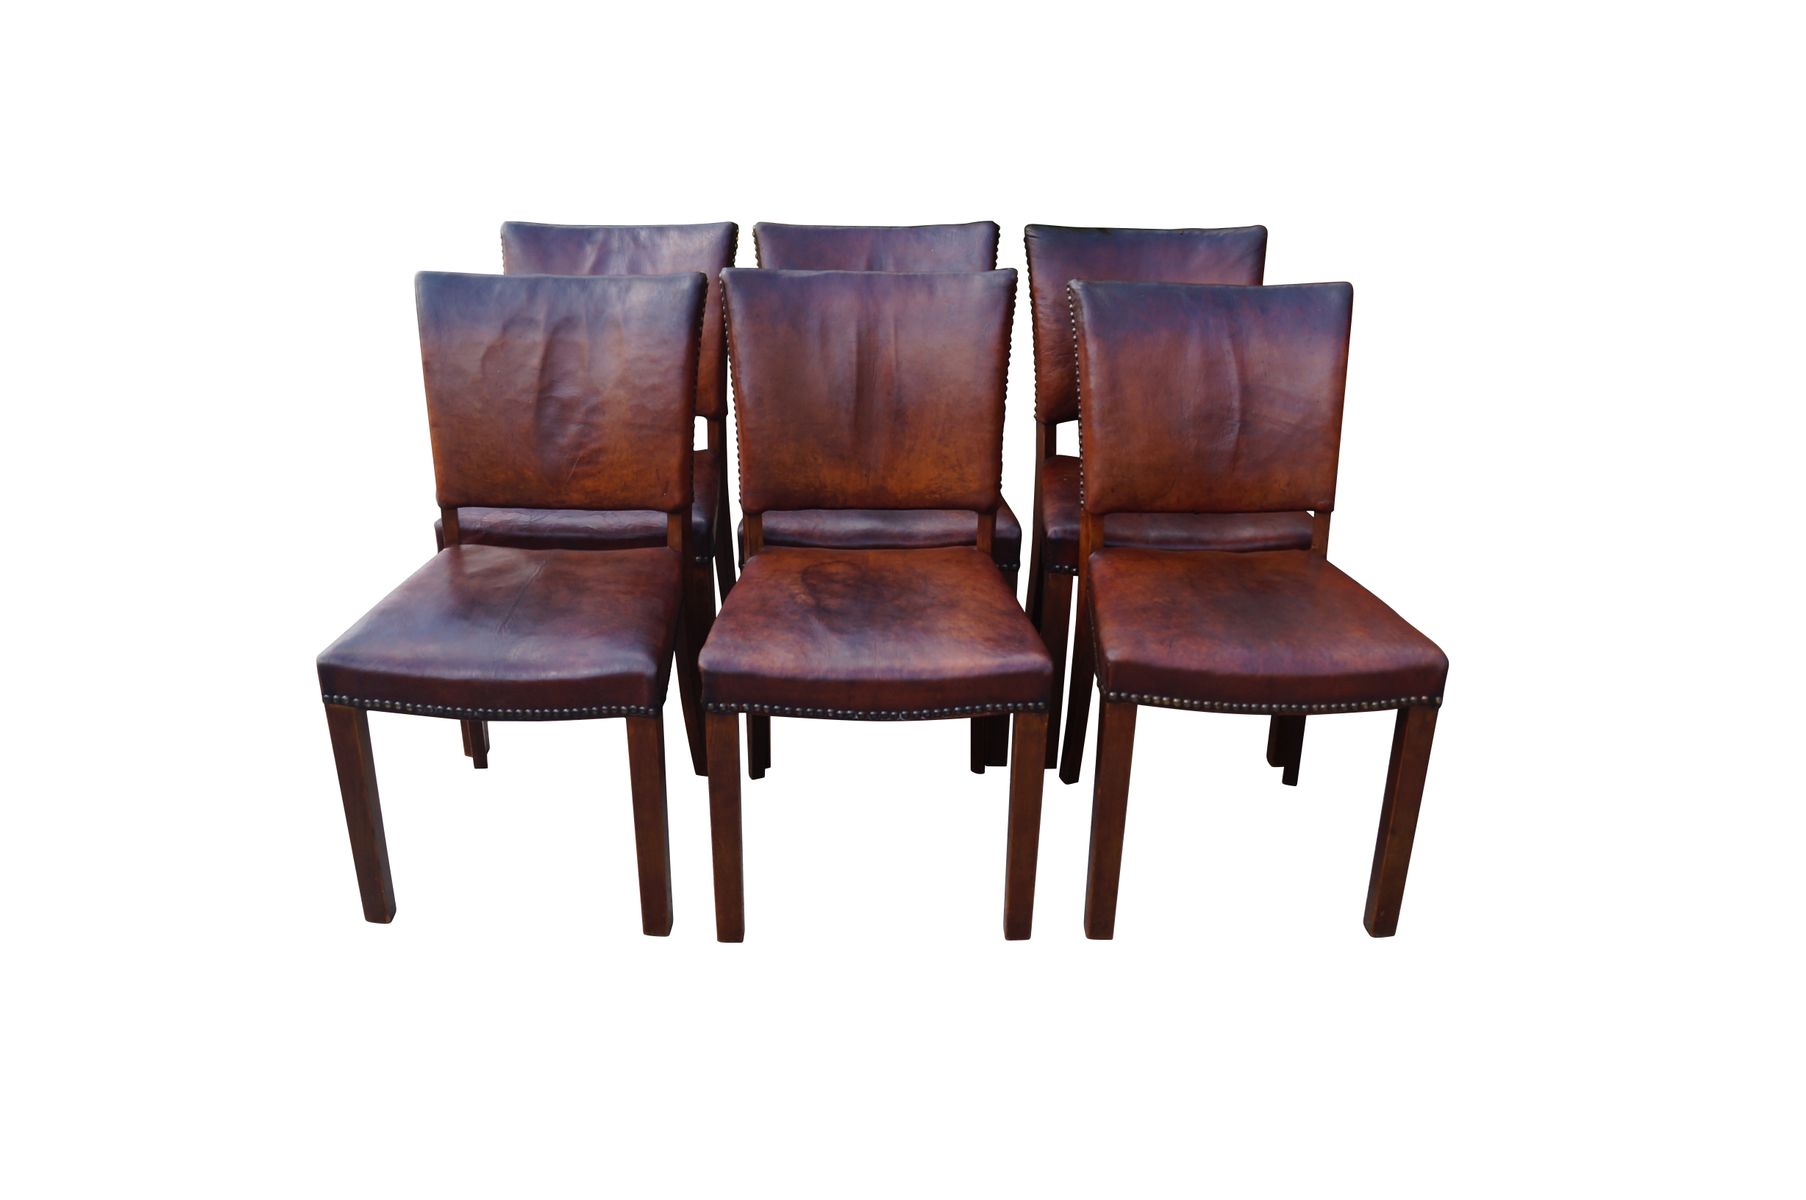 Danish Dining Room Chair By Jacob Kjær, 1940s, Set Of 6